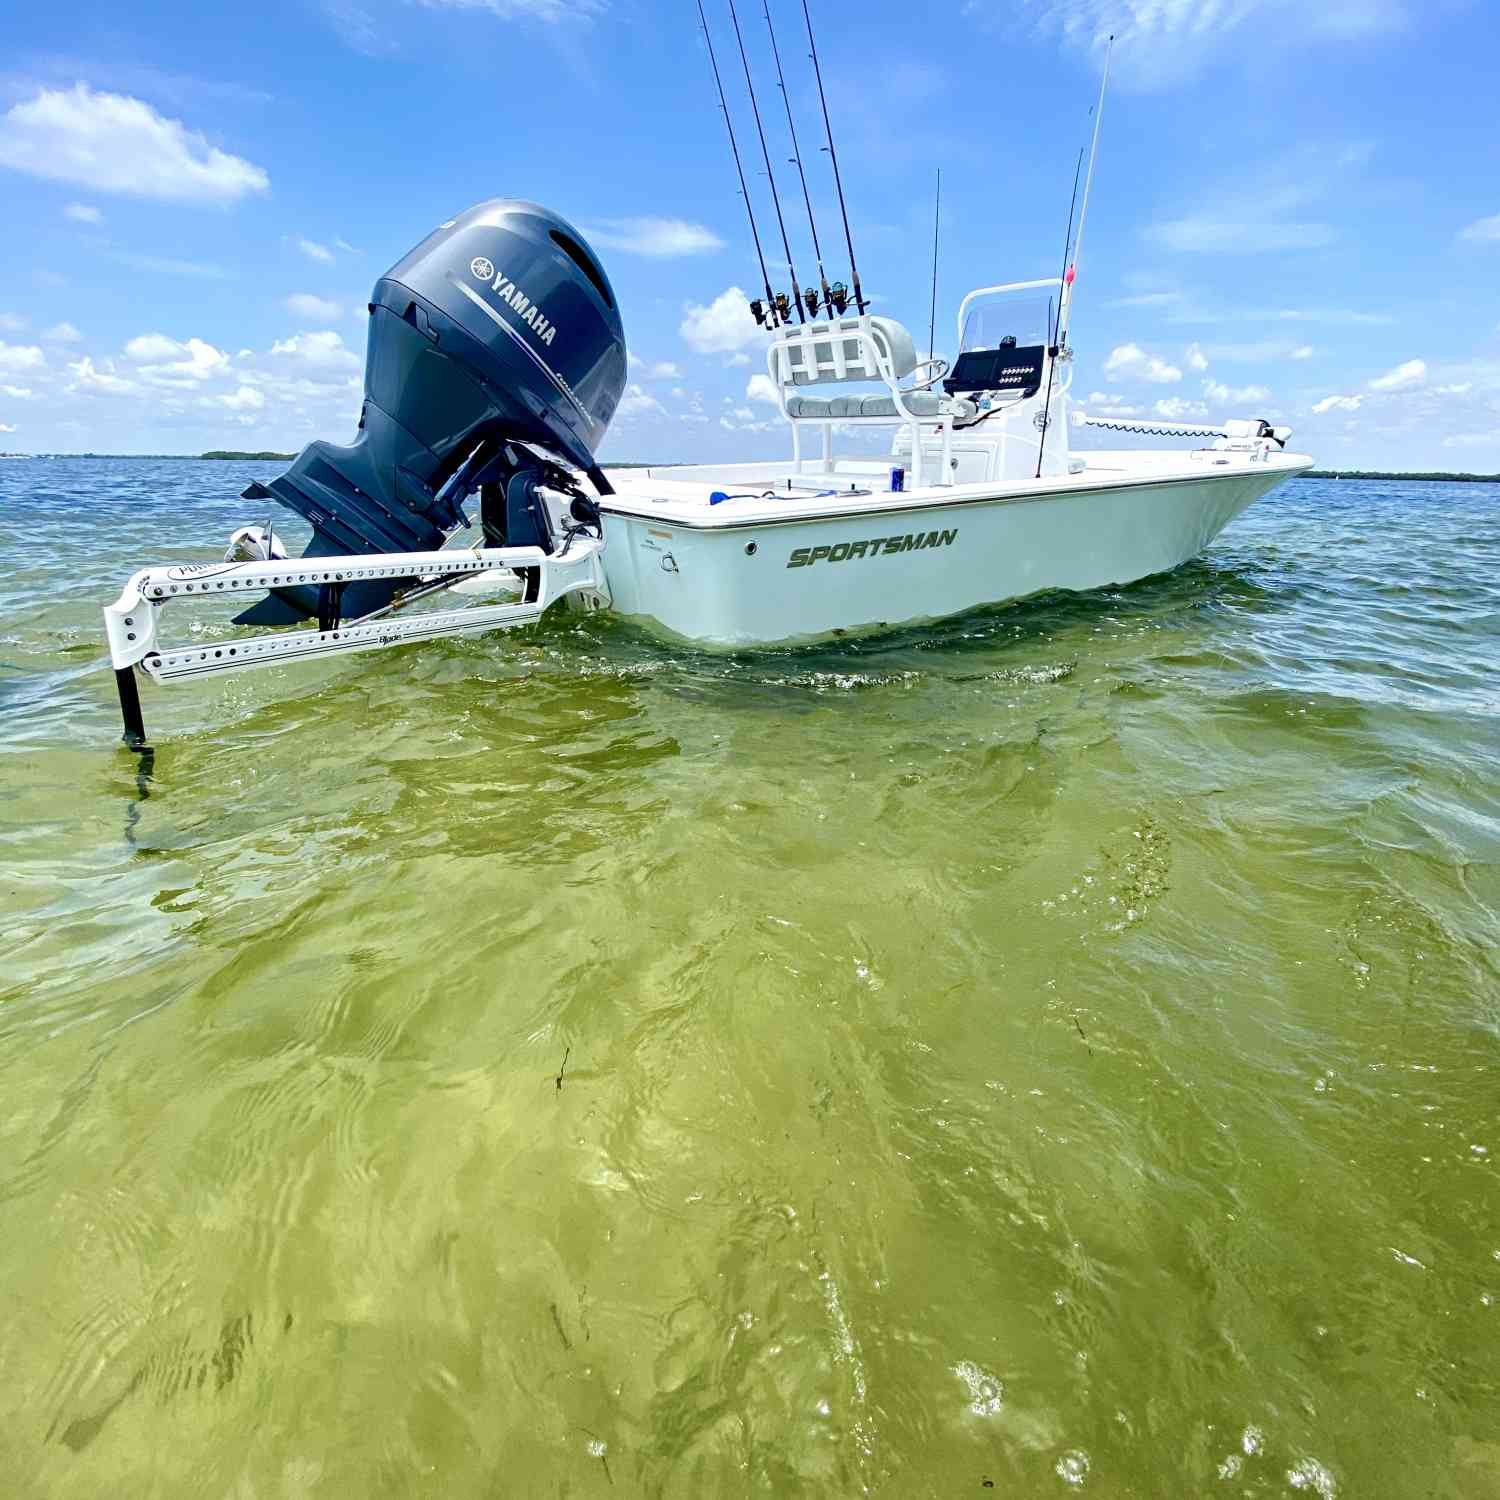 Title: 2019 Masters 207 - On board their Sportsman Masters 207 Bay Boat - Location: Sandy Hook, Crystal River. Participating in the Photo Contest #SportsmanAugust2020